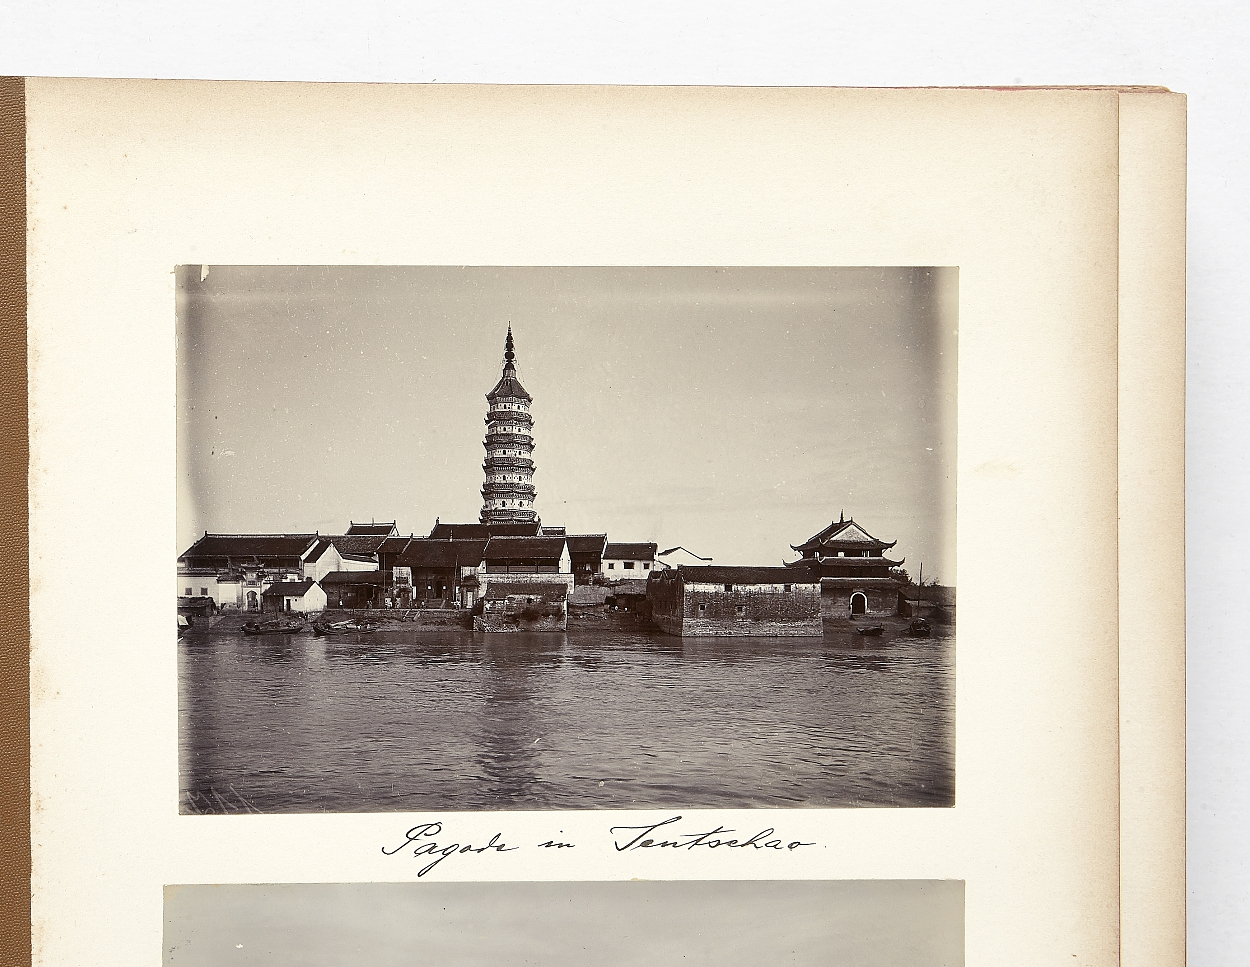 Photographs from a travel in China, c. 1910